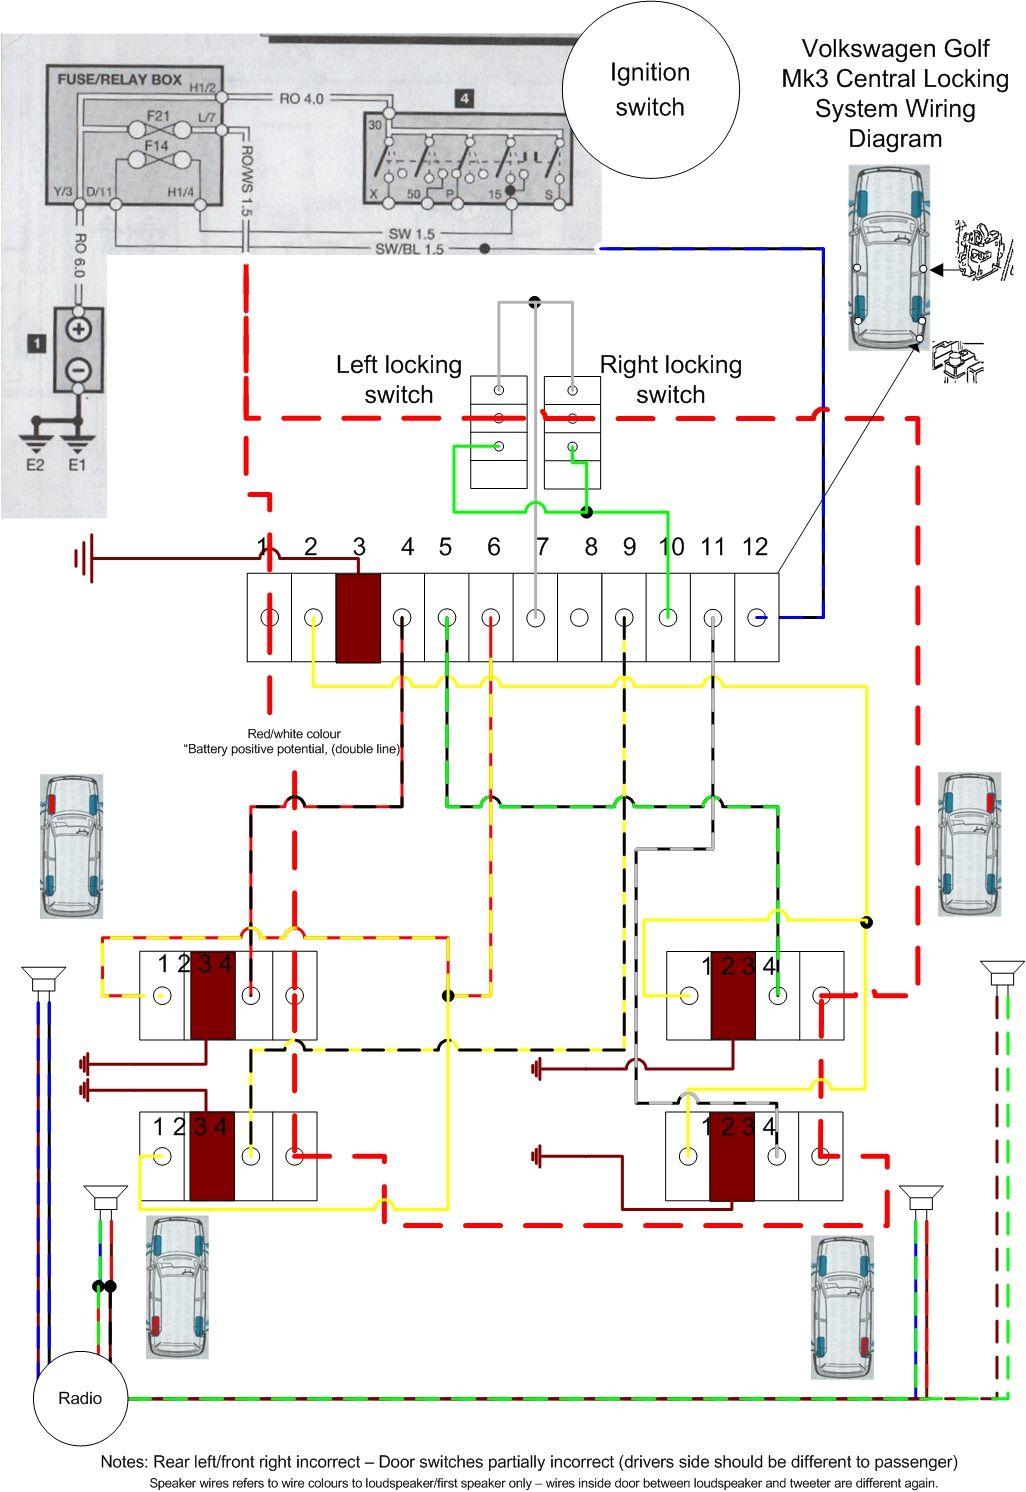 hight resolution of vw ignition switch wiring diagram another wiring diagram vw ignition switch wiring diagram vw ignition wiring diagram